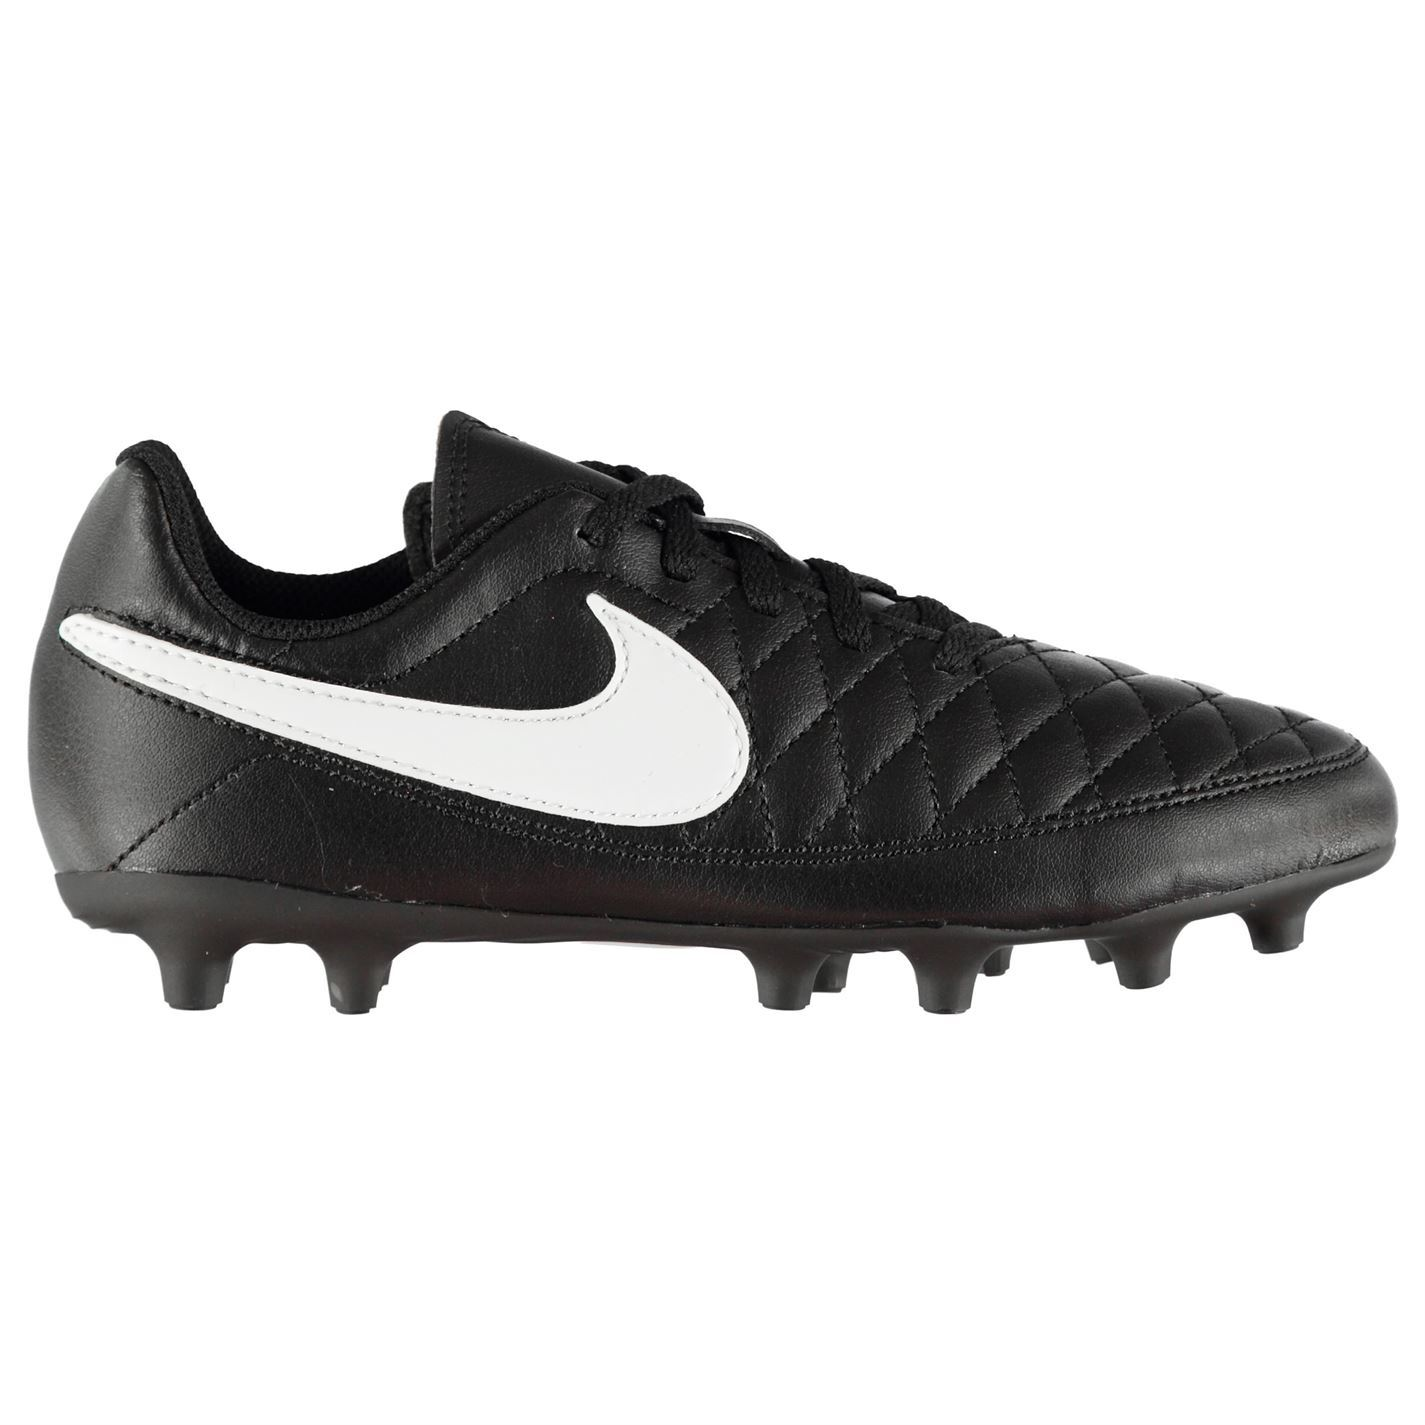 miniature 9 - Nike-majestry-FG-Firm-Ground-Chaussures-De-Football-Enfants-Football-Chaussures-Crampons